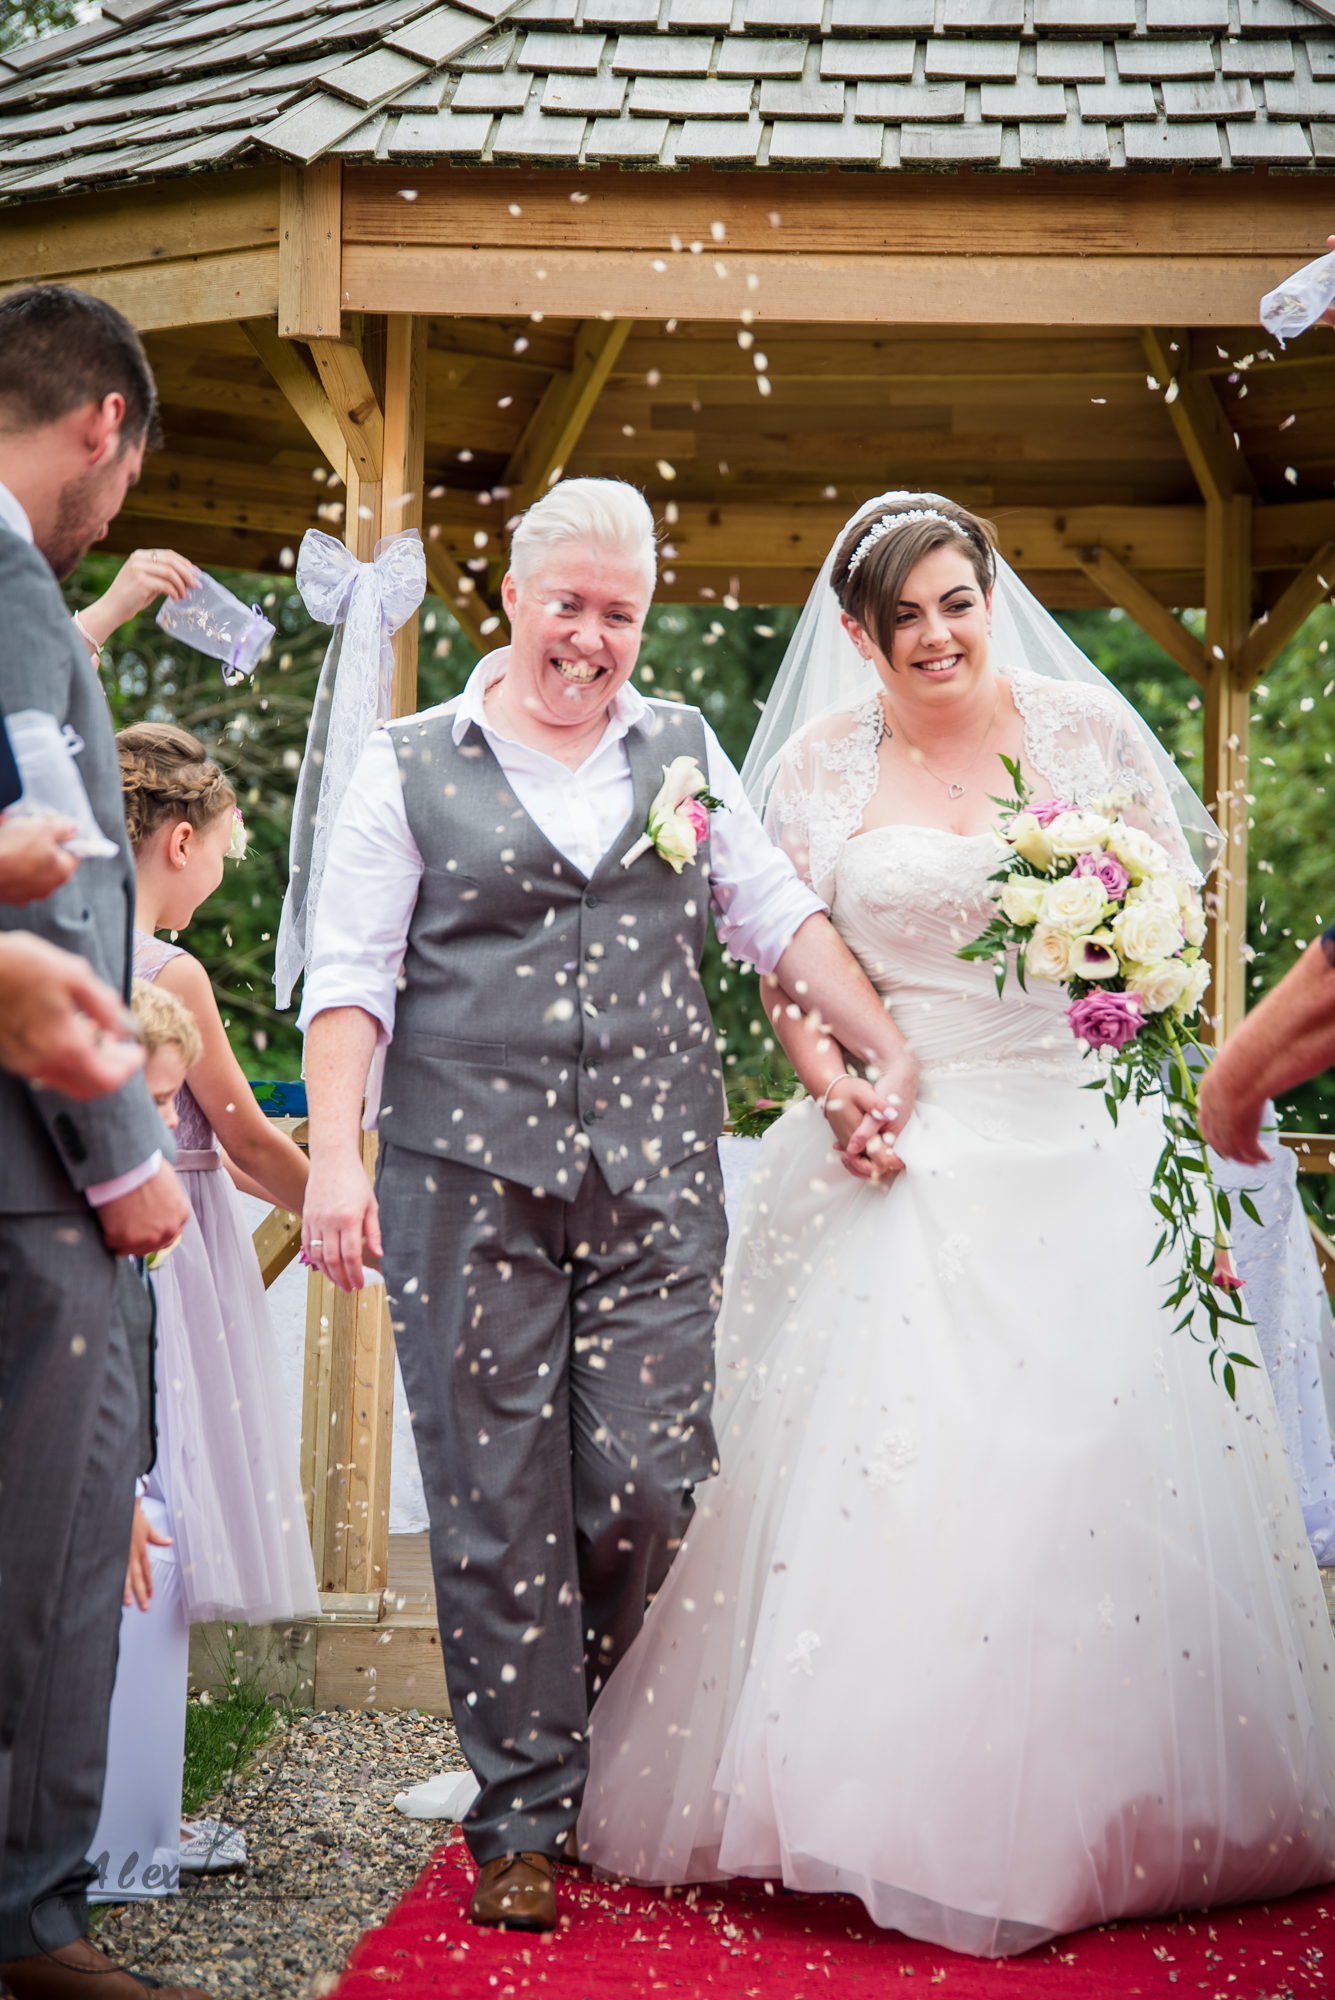 the Shropshire bride and bride walk down the aisle together getting covered in confetti